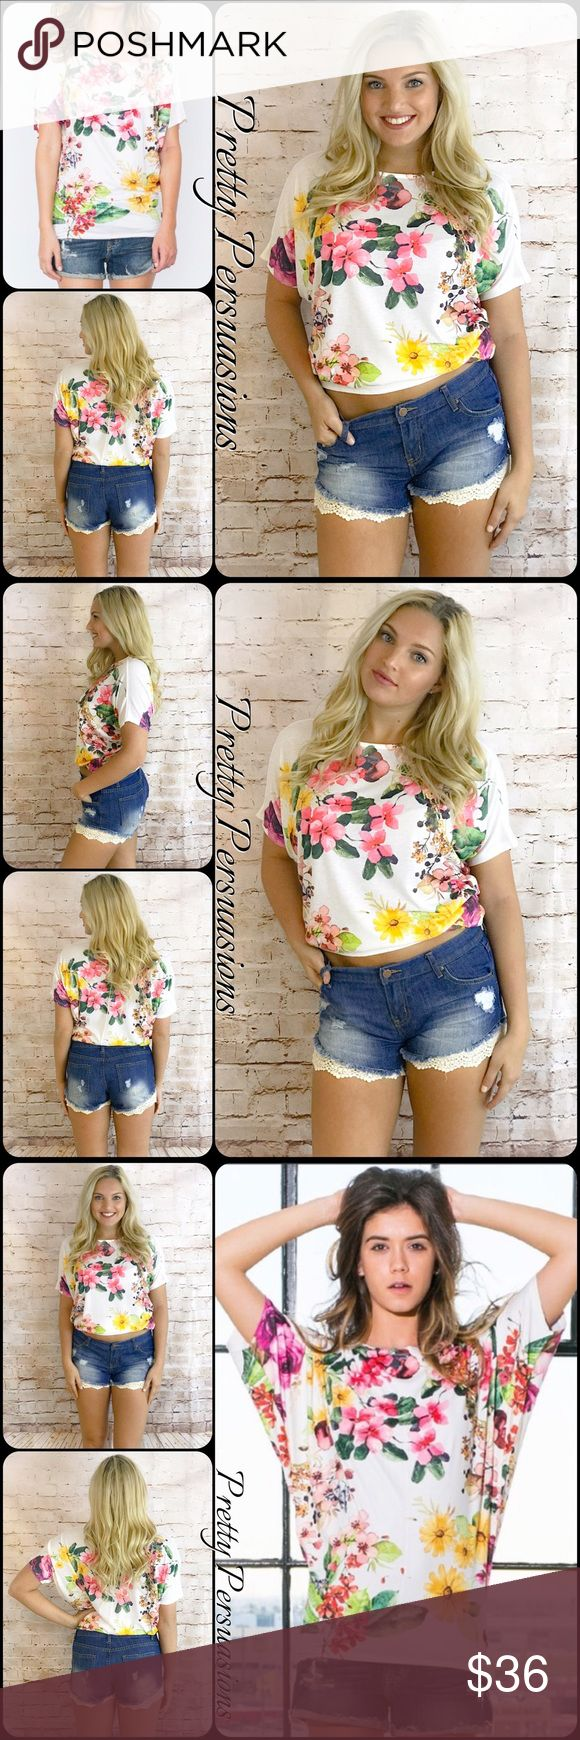 NWT Floral Dolman Sleeve Slouchy Top NWT Floral Dolman Sleeve Slouchy Top  Available in sizes S, M, L Measurements taken from a size small  Length:  Bust:  Waist:  Hips:   Features • very soft, breathable material  • loose, slouchy fit • dolman sleeves • ditsy floral print • short sleeves • rounded neckline   Made in the USA  Bundle discounts available  No pp or trades  Item # 1/107130360FT blush pink white green multicolored floral Pretty Persuasions Tops Tees - Short Sleeve